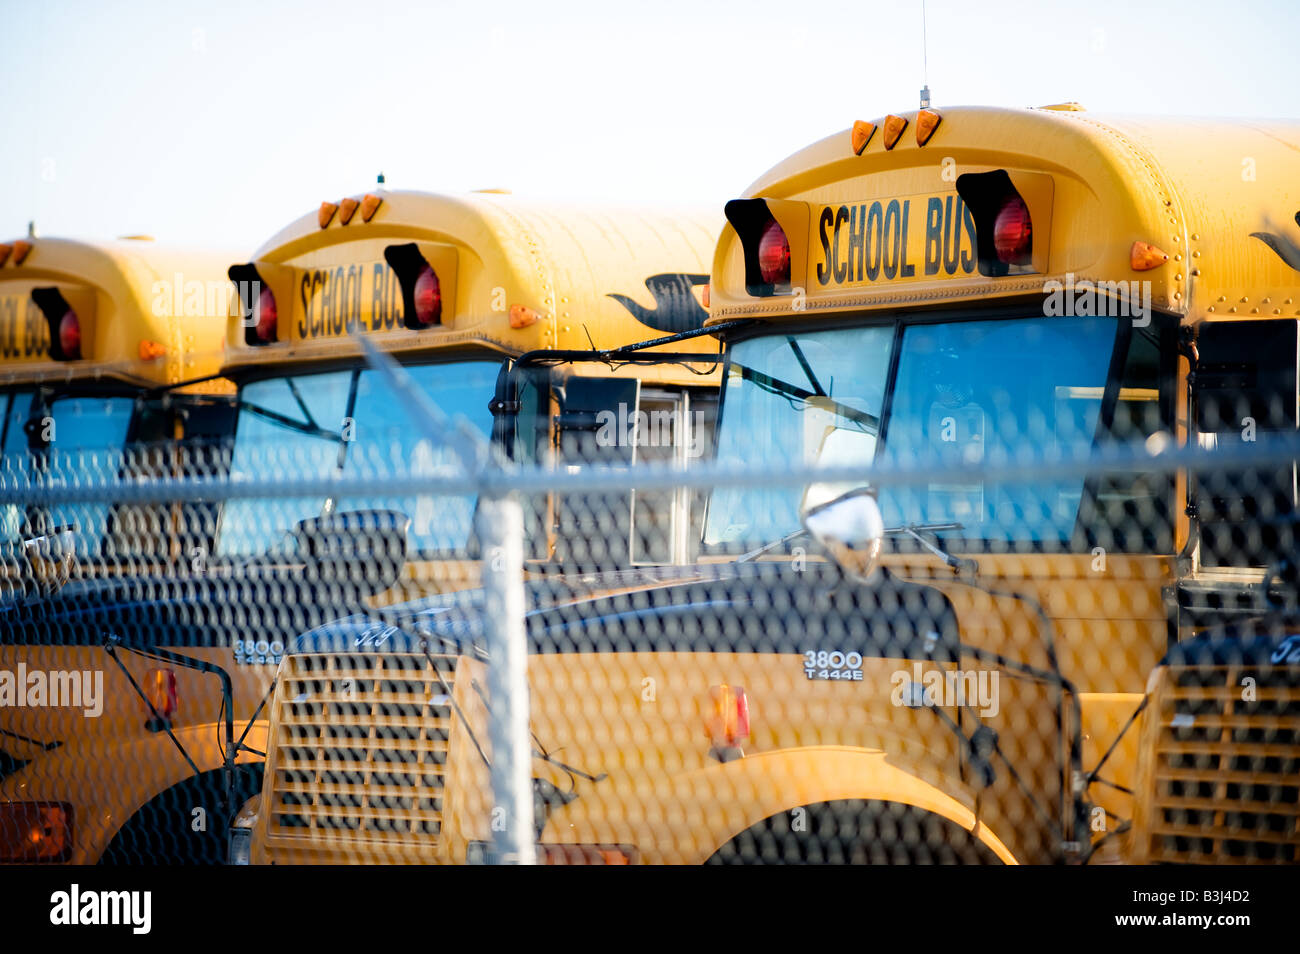 Several buses lined up in a depot ready for the school season. - Stock Image